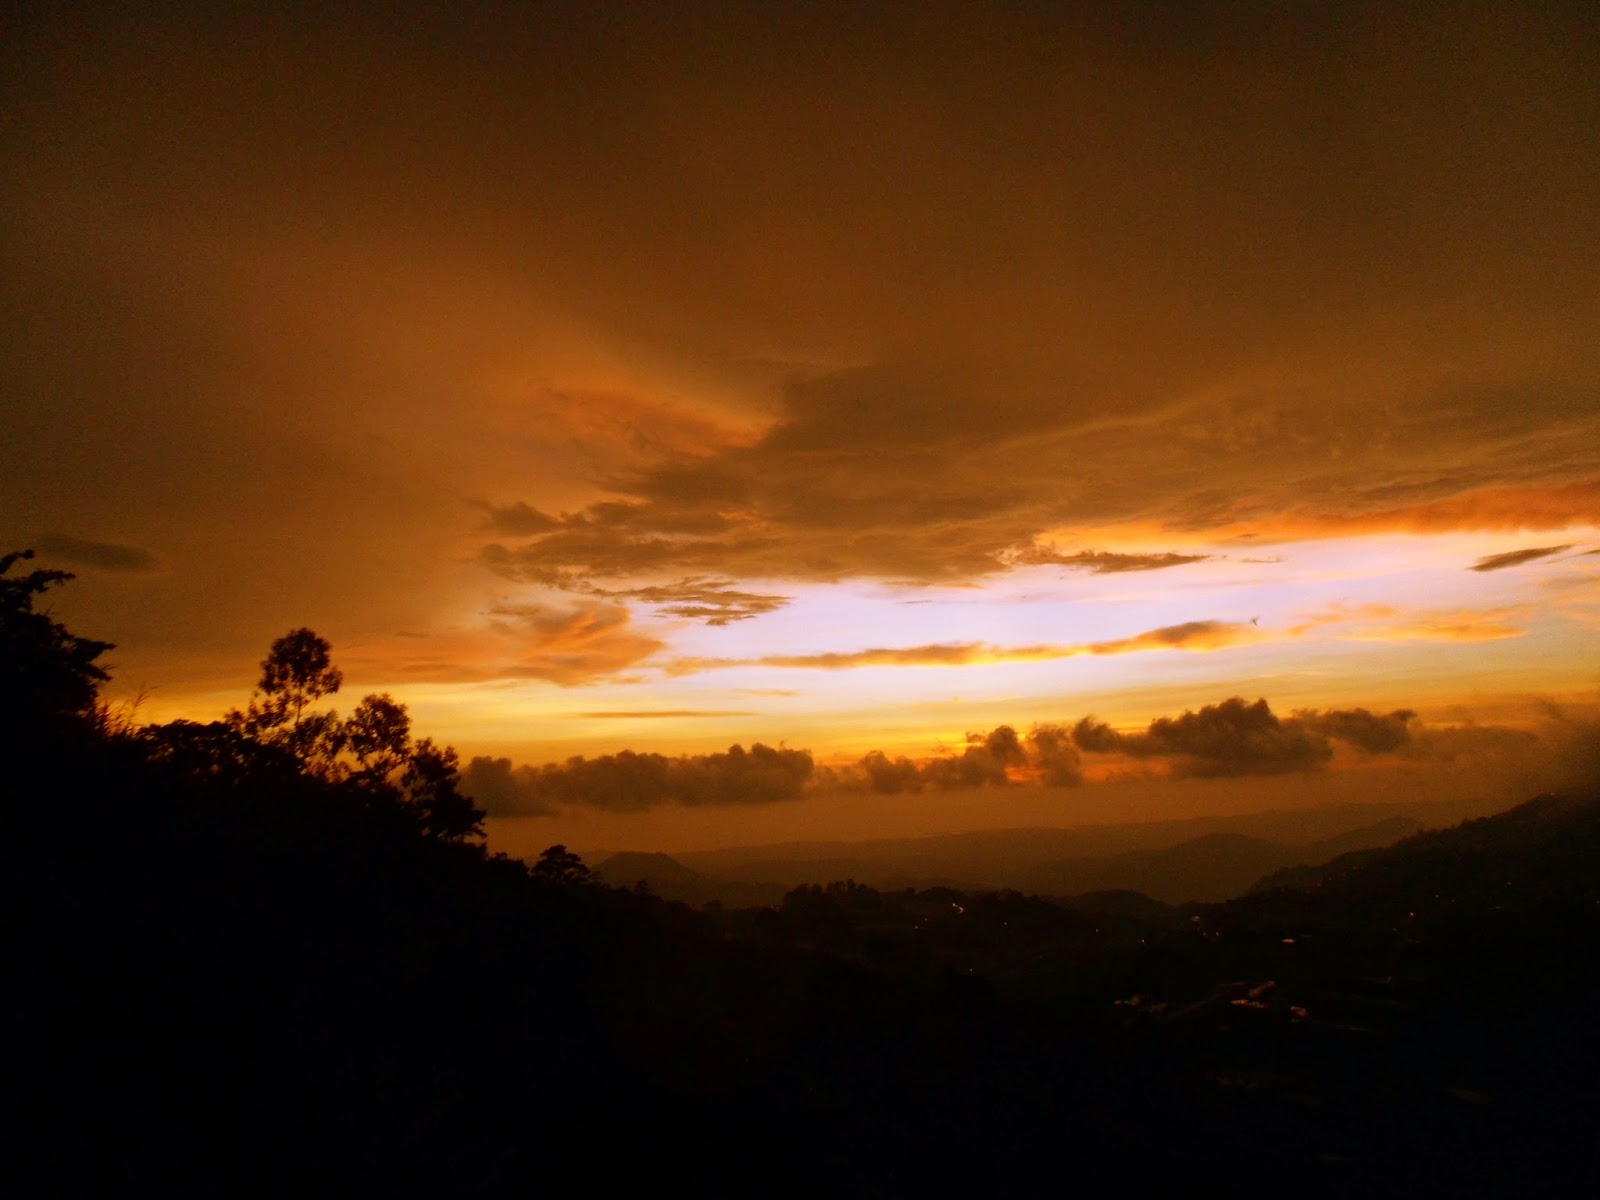 sunset in Baguio